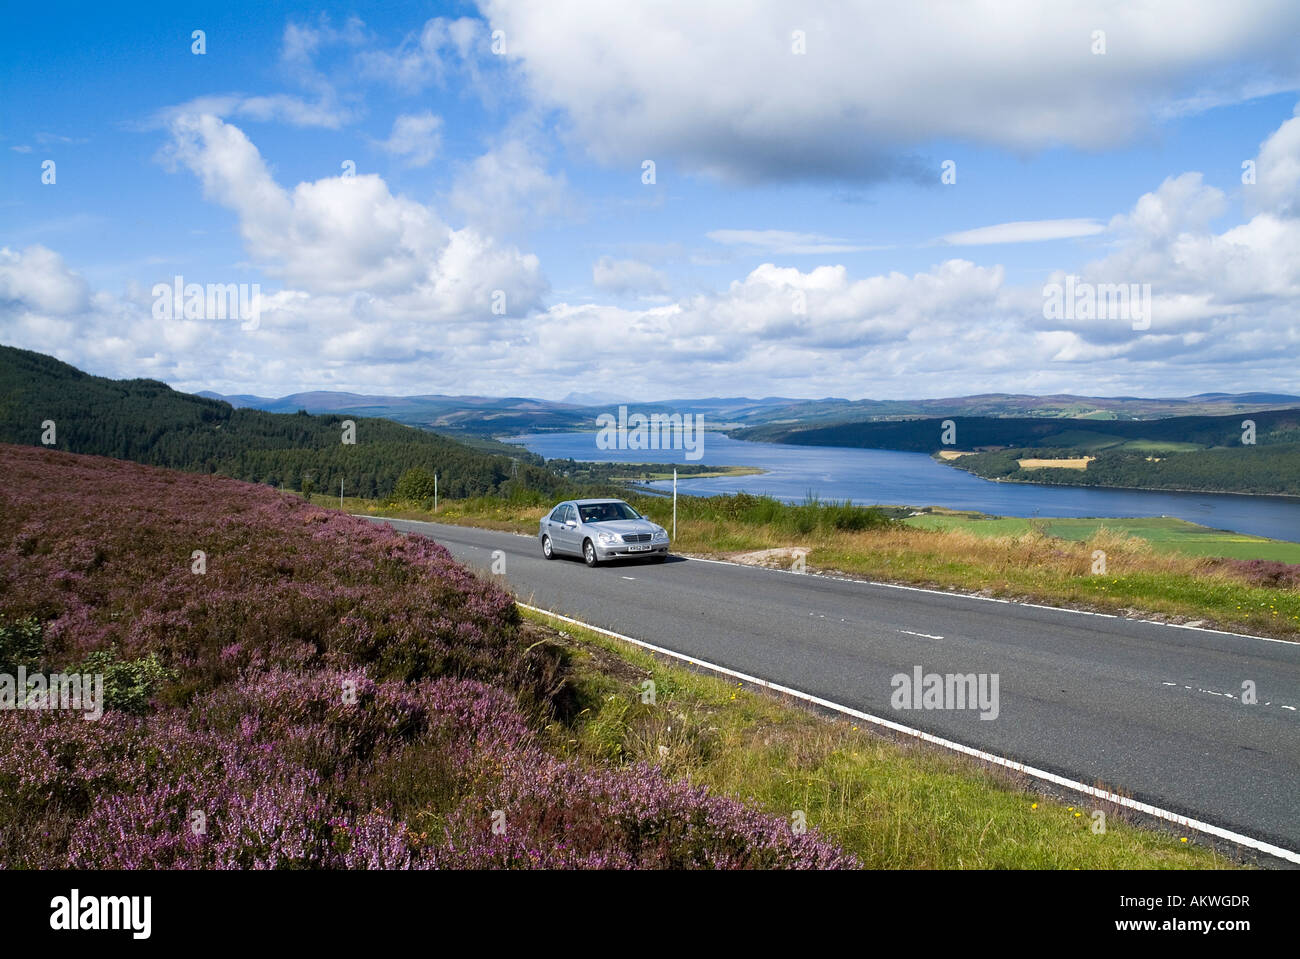 dh Struie Hill STRUIE ROSS CROMARTY Car driving scotland scottish country road highlands drive scenic summer uk touring view holiday countryside Stock Photo